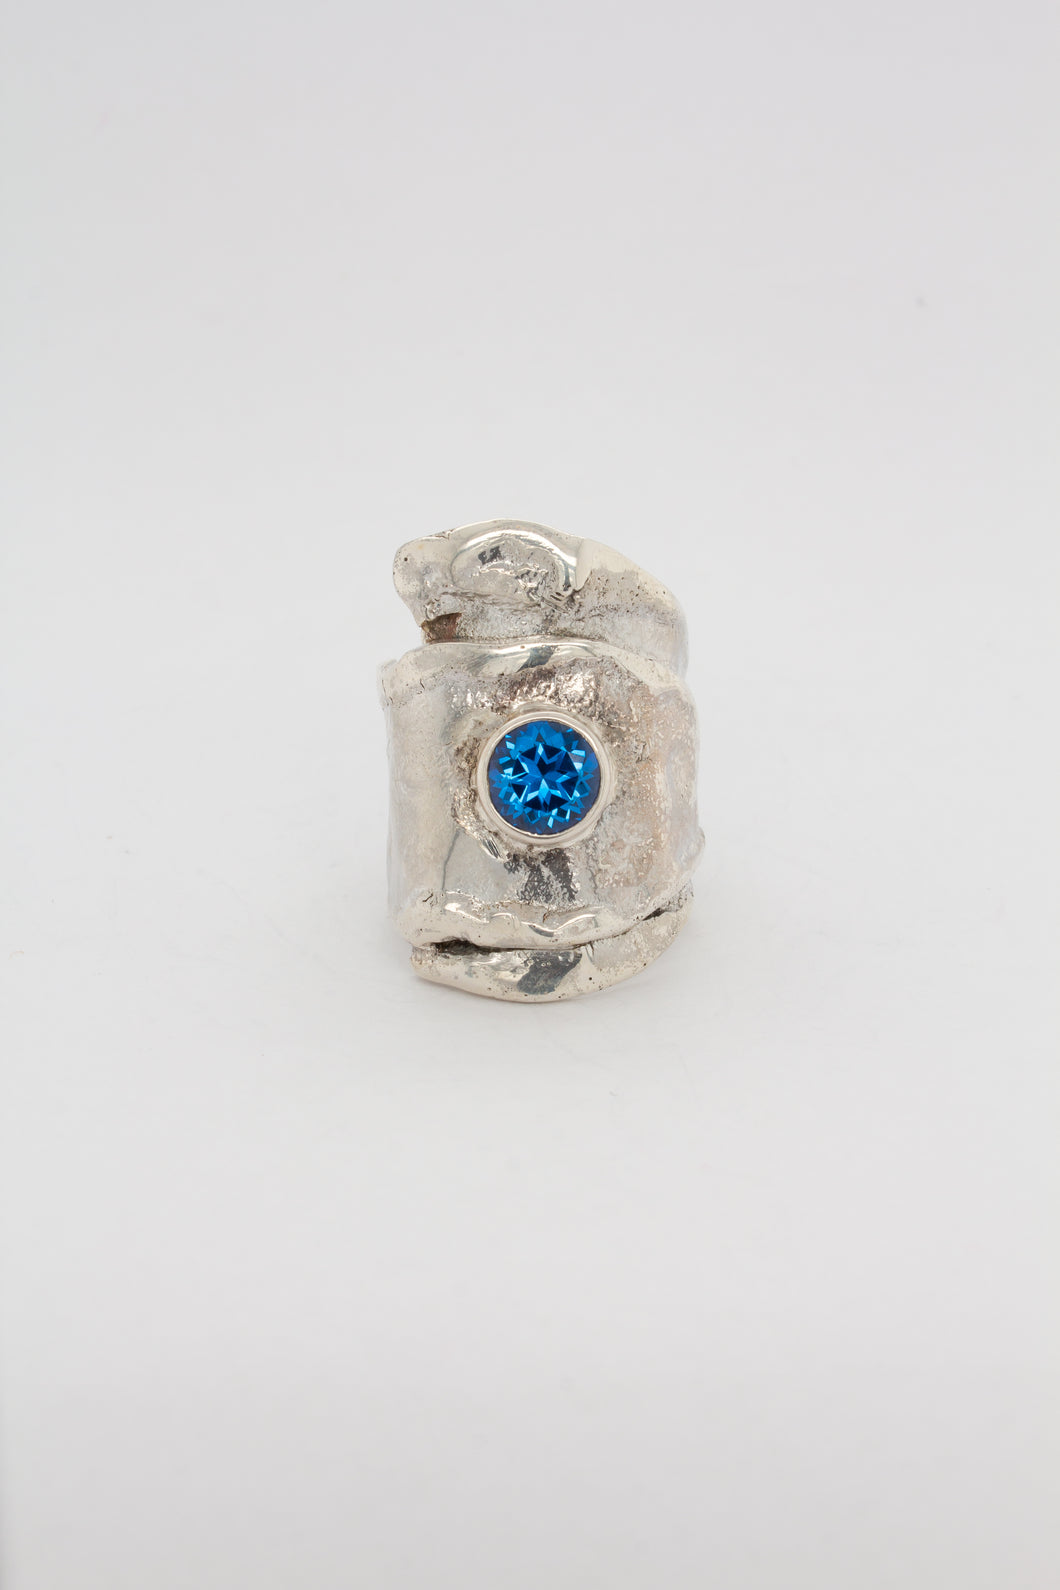 Reticulated Blue Topaz Ring